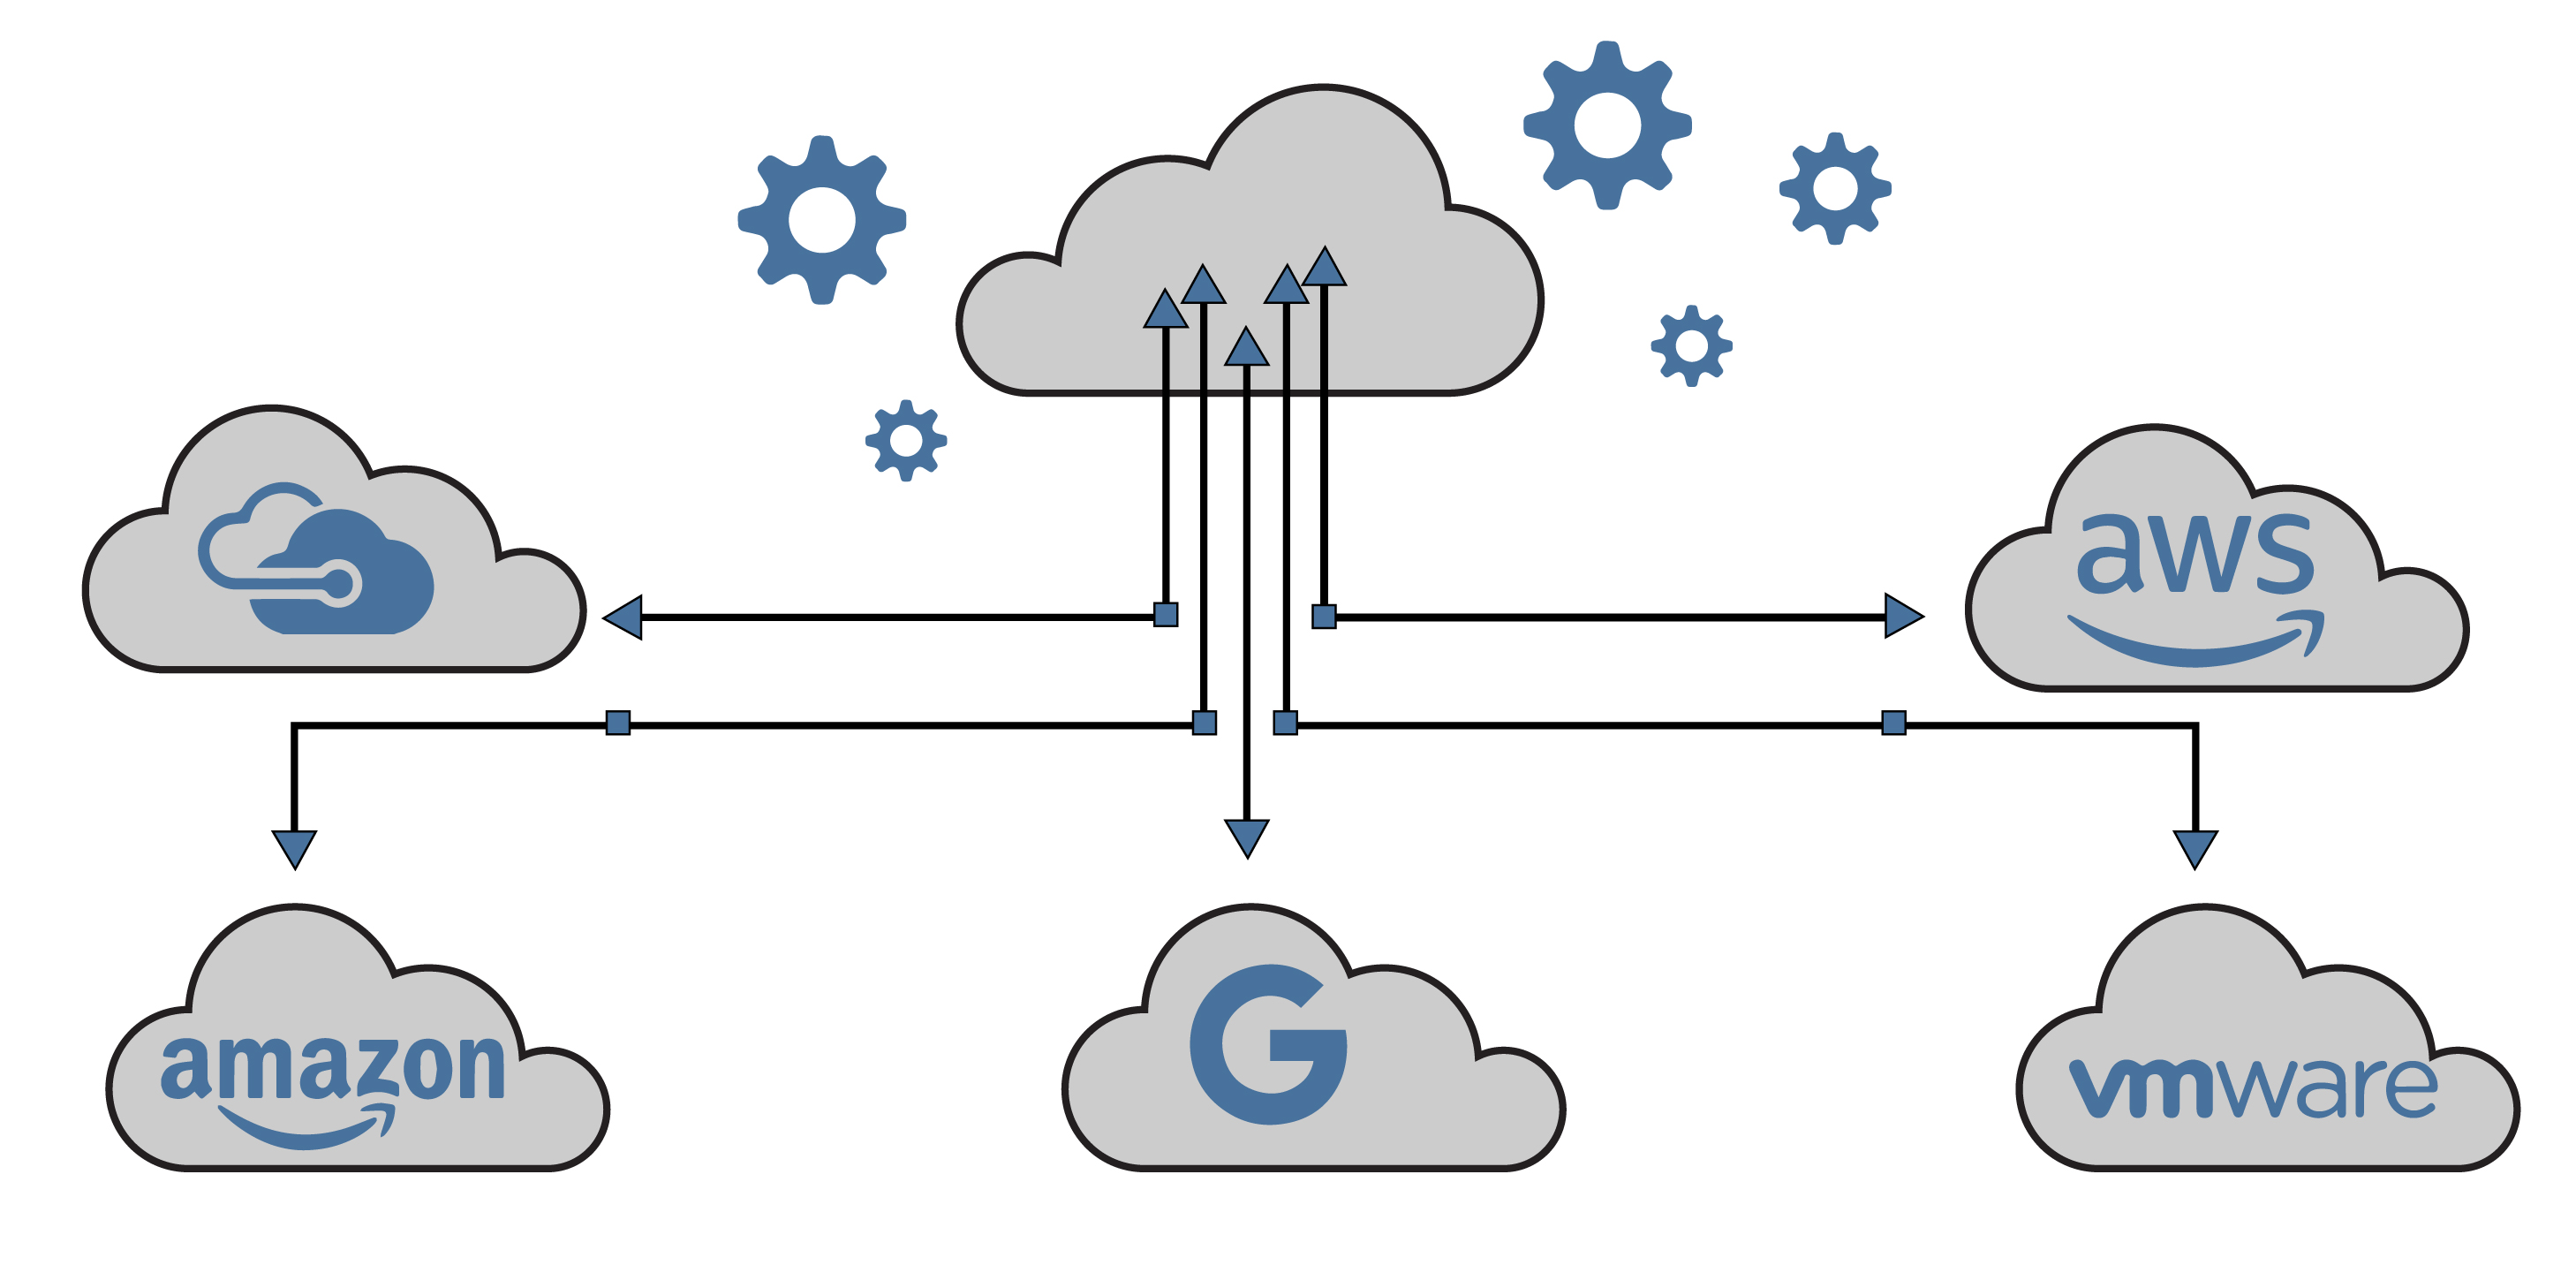 diagram depicting a multi-cloud strategy